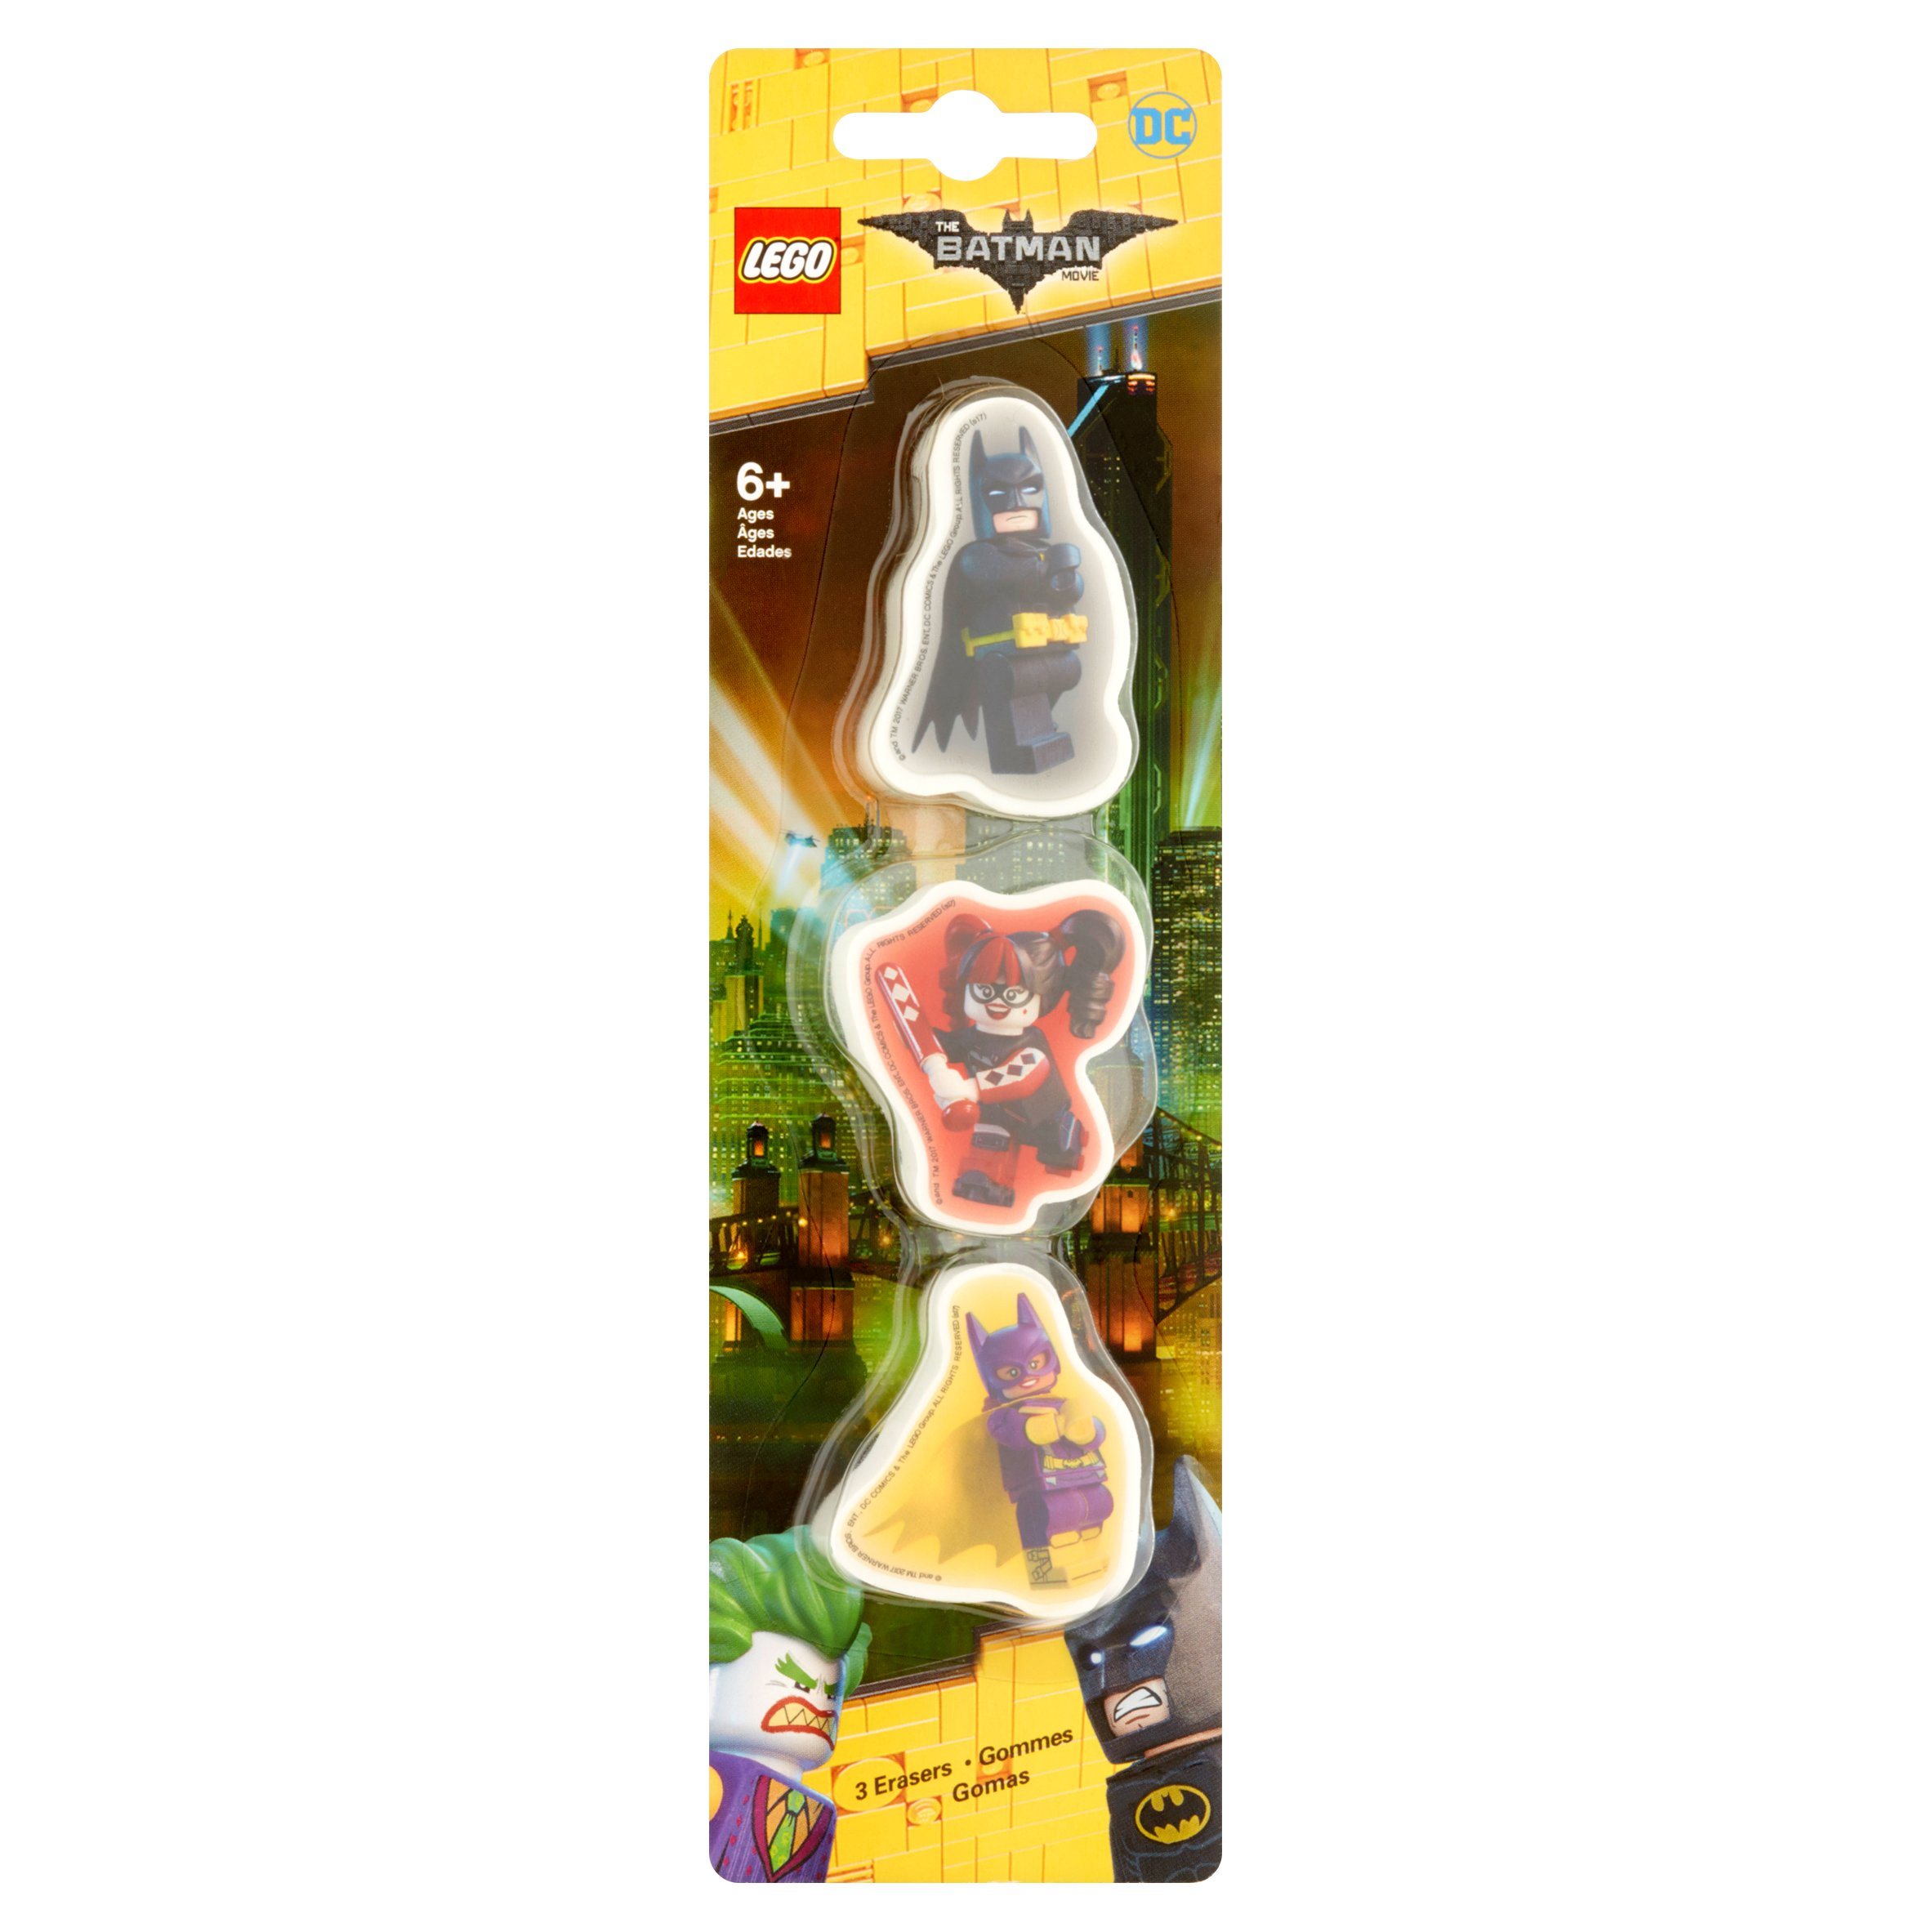 Lego DC The Batman Movie Erasers 6+ Ages, 3 count